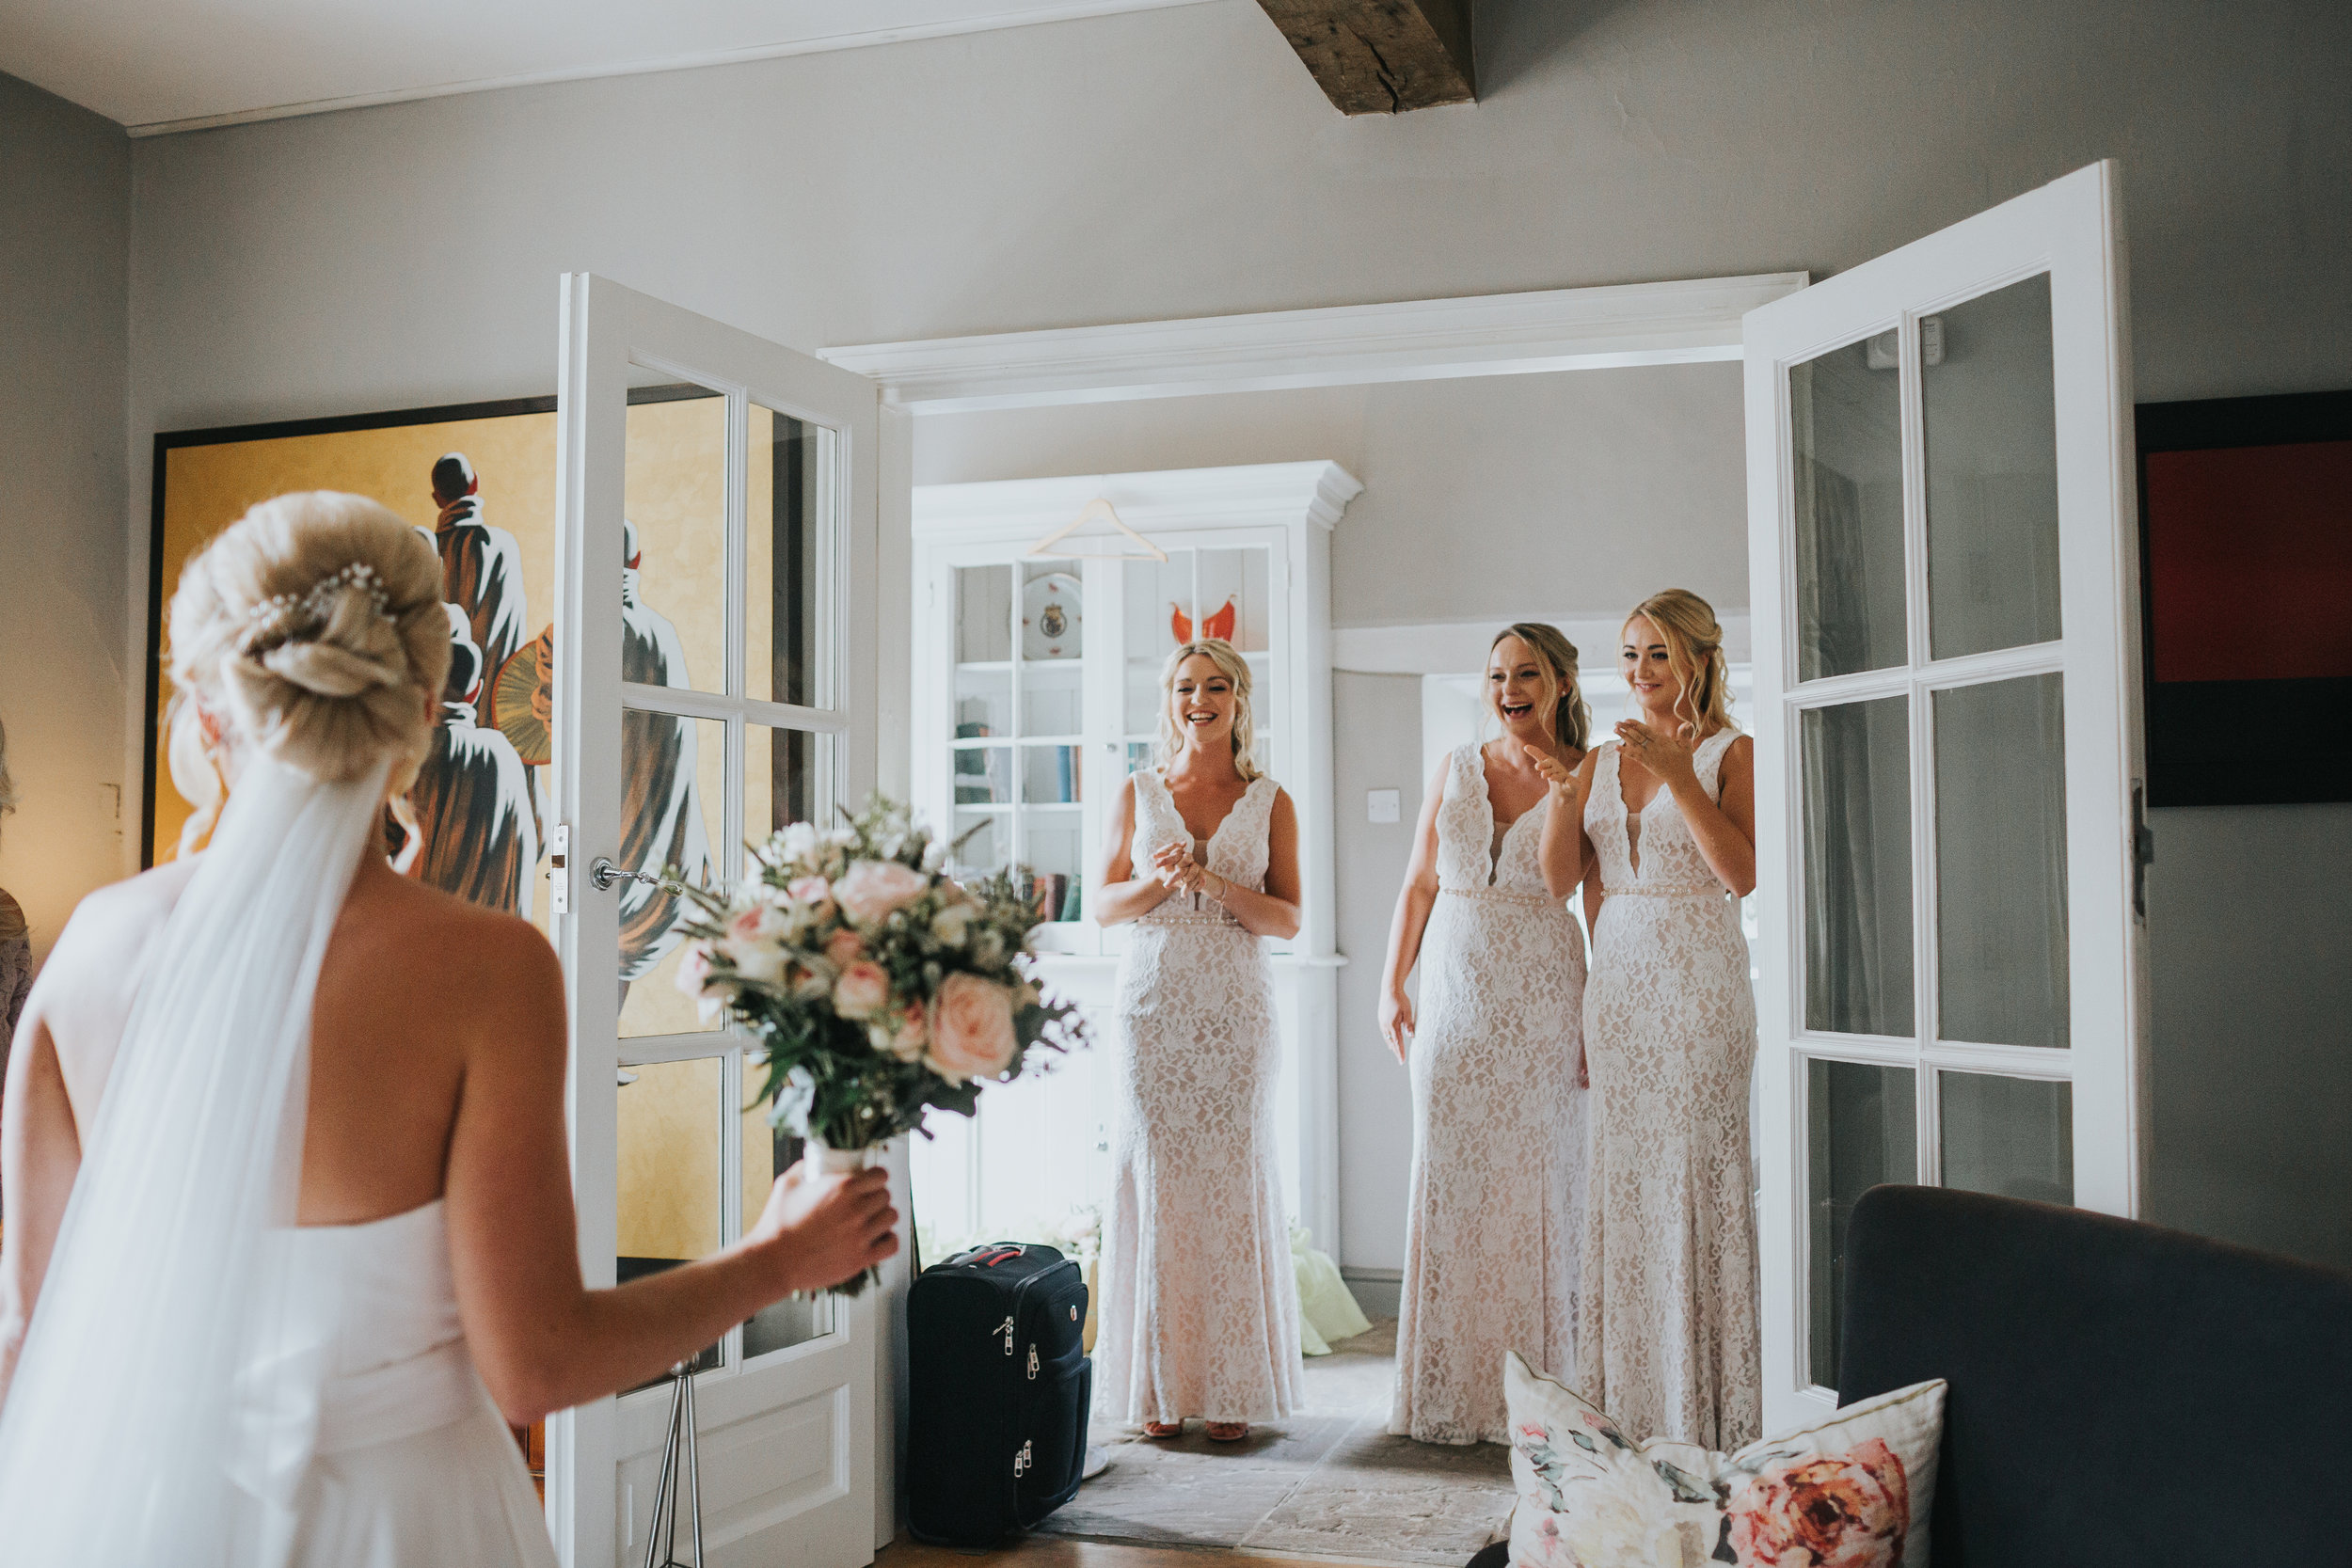 Bridesmaids see Bride in her wedding dress for the first time.